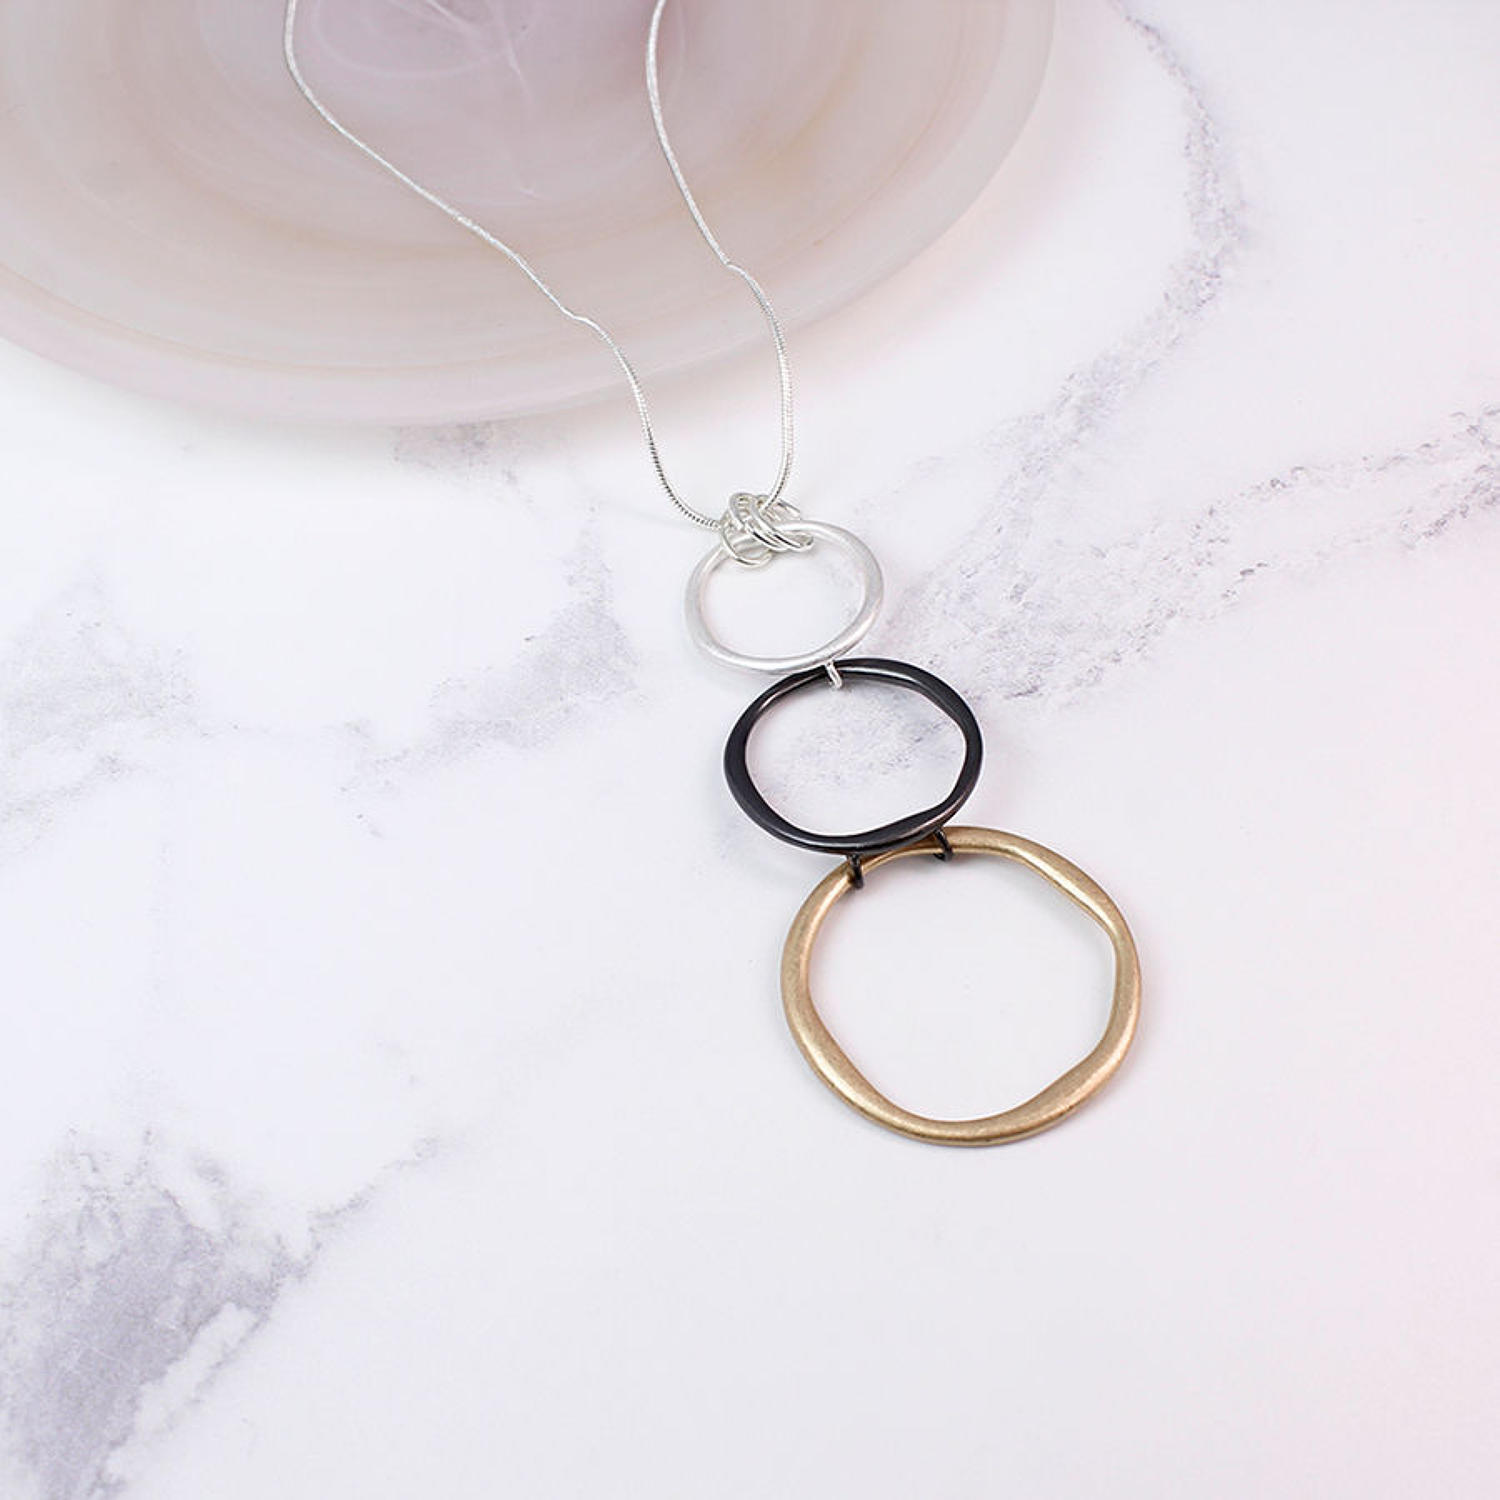 POM - Long triple hoop mixed metal necklace